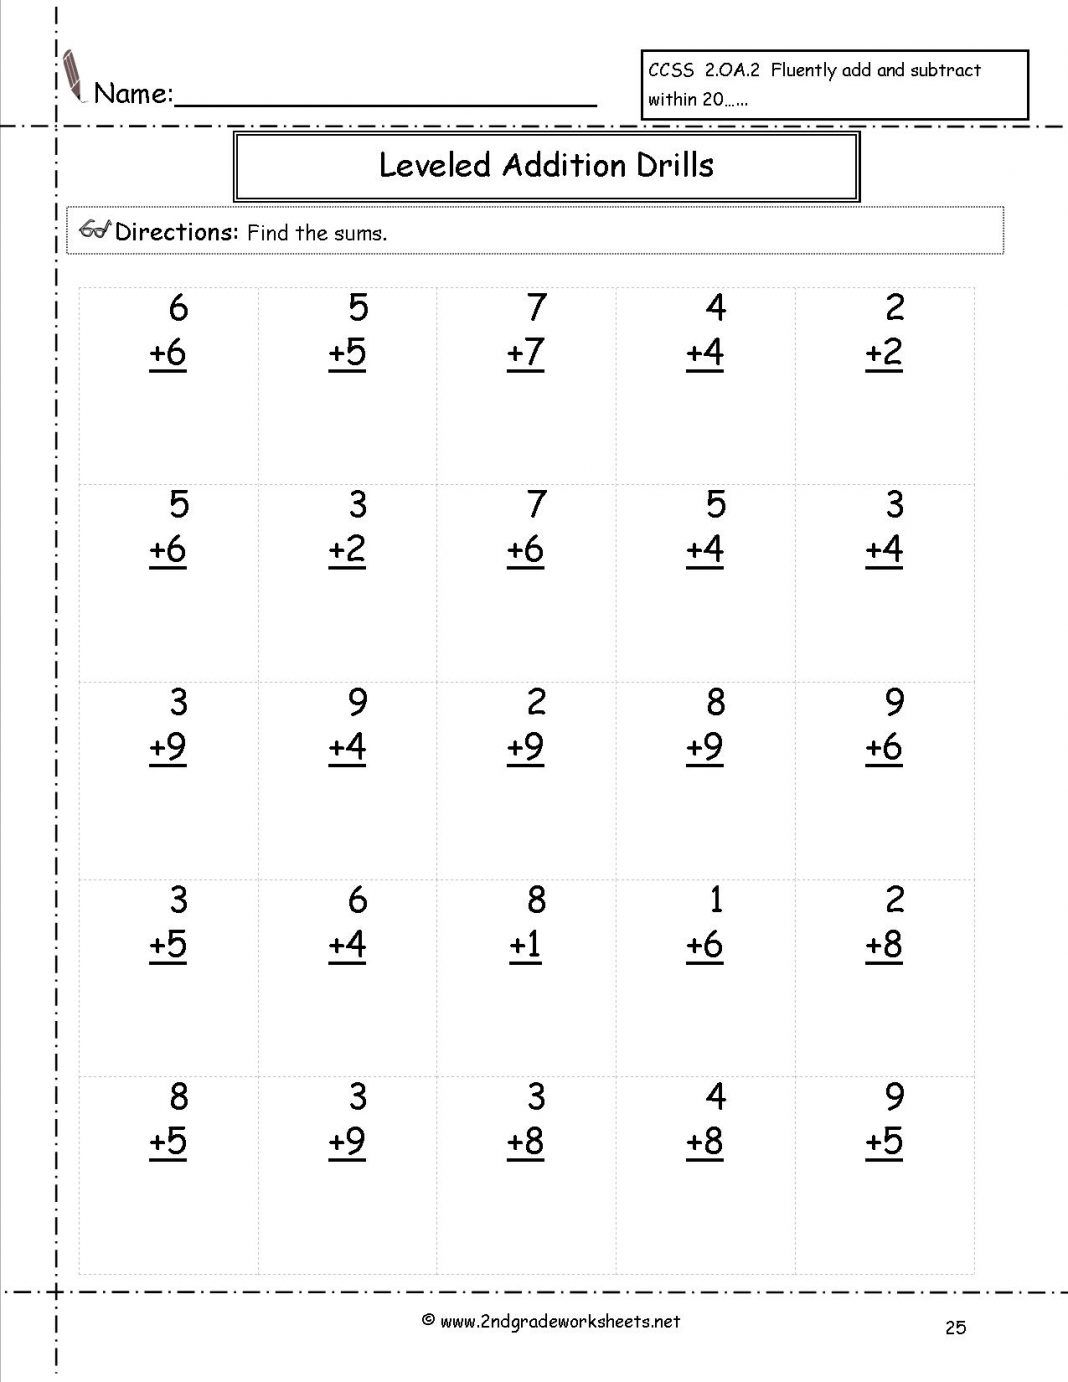 Second Grade Math Worksheets Additiondrills25 Leveled In